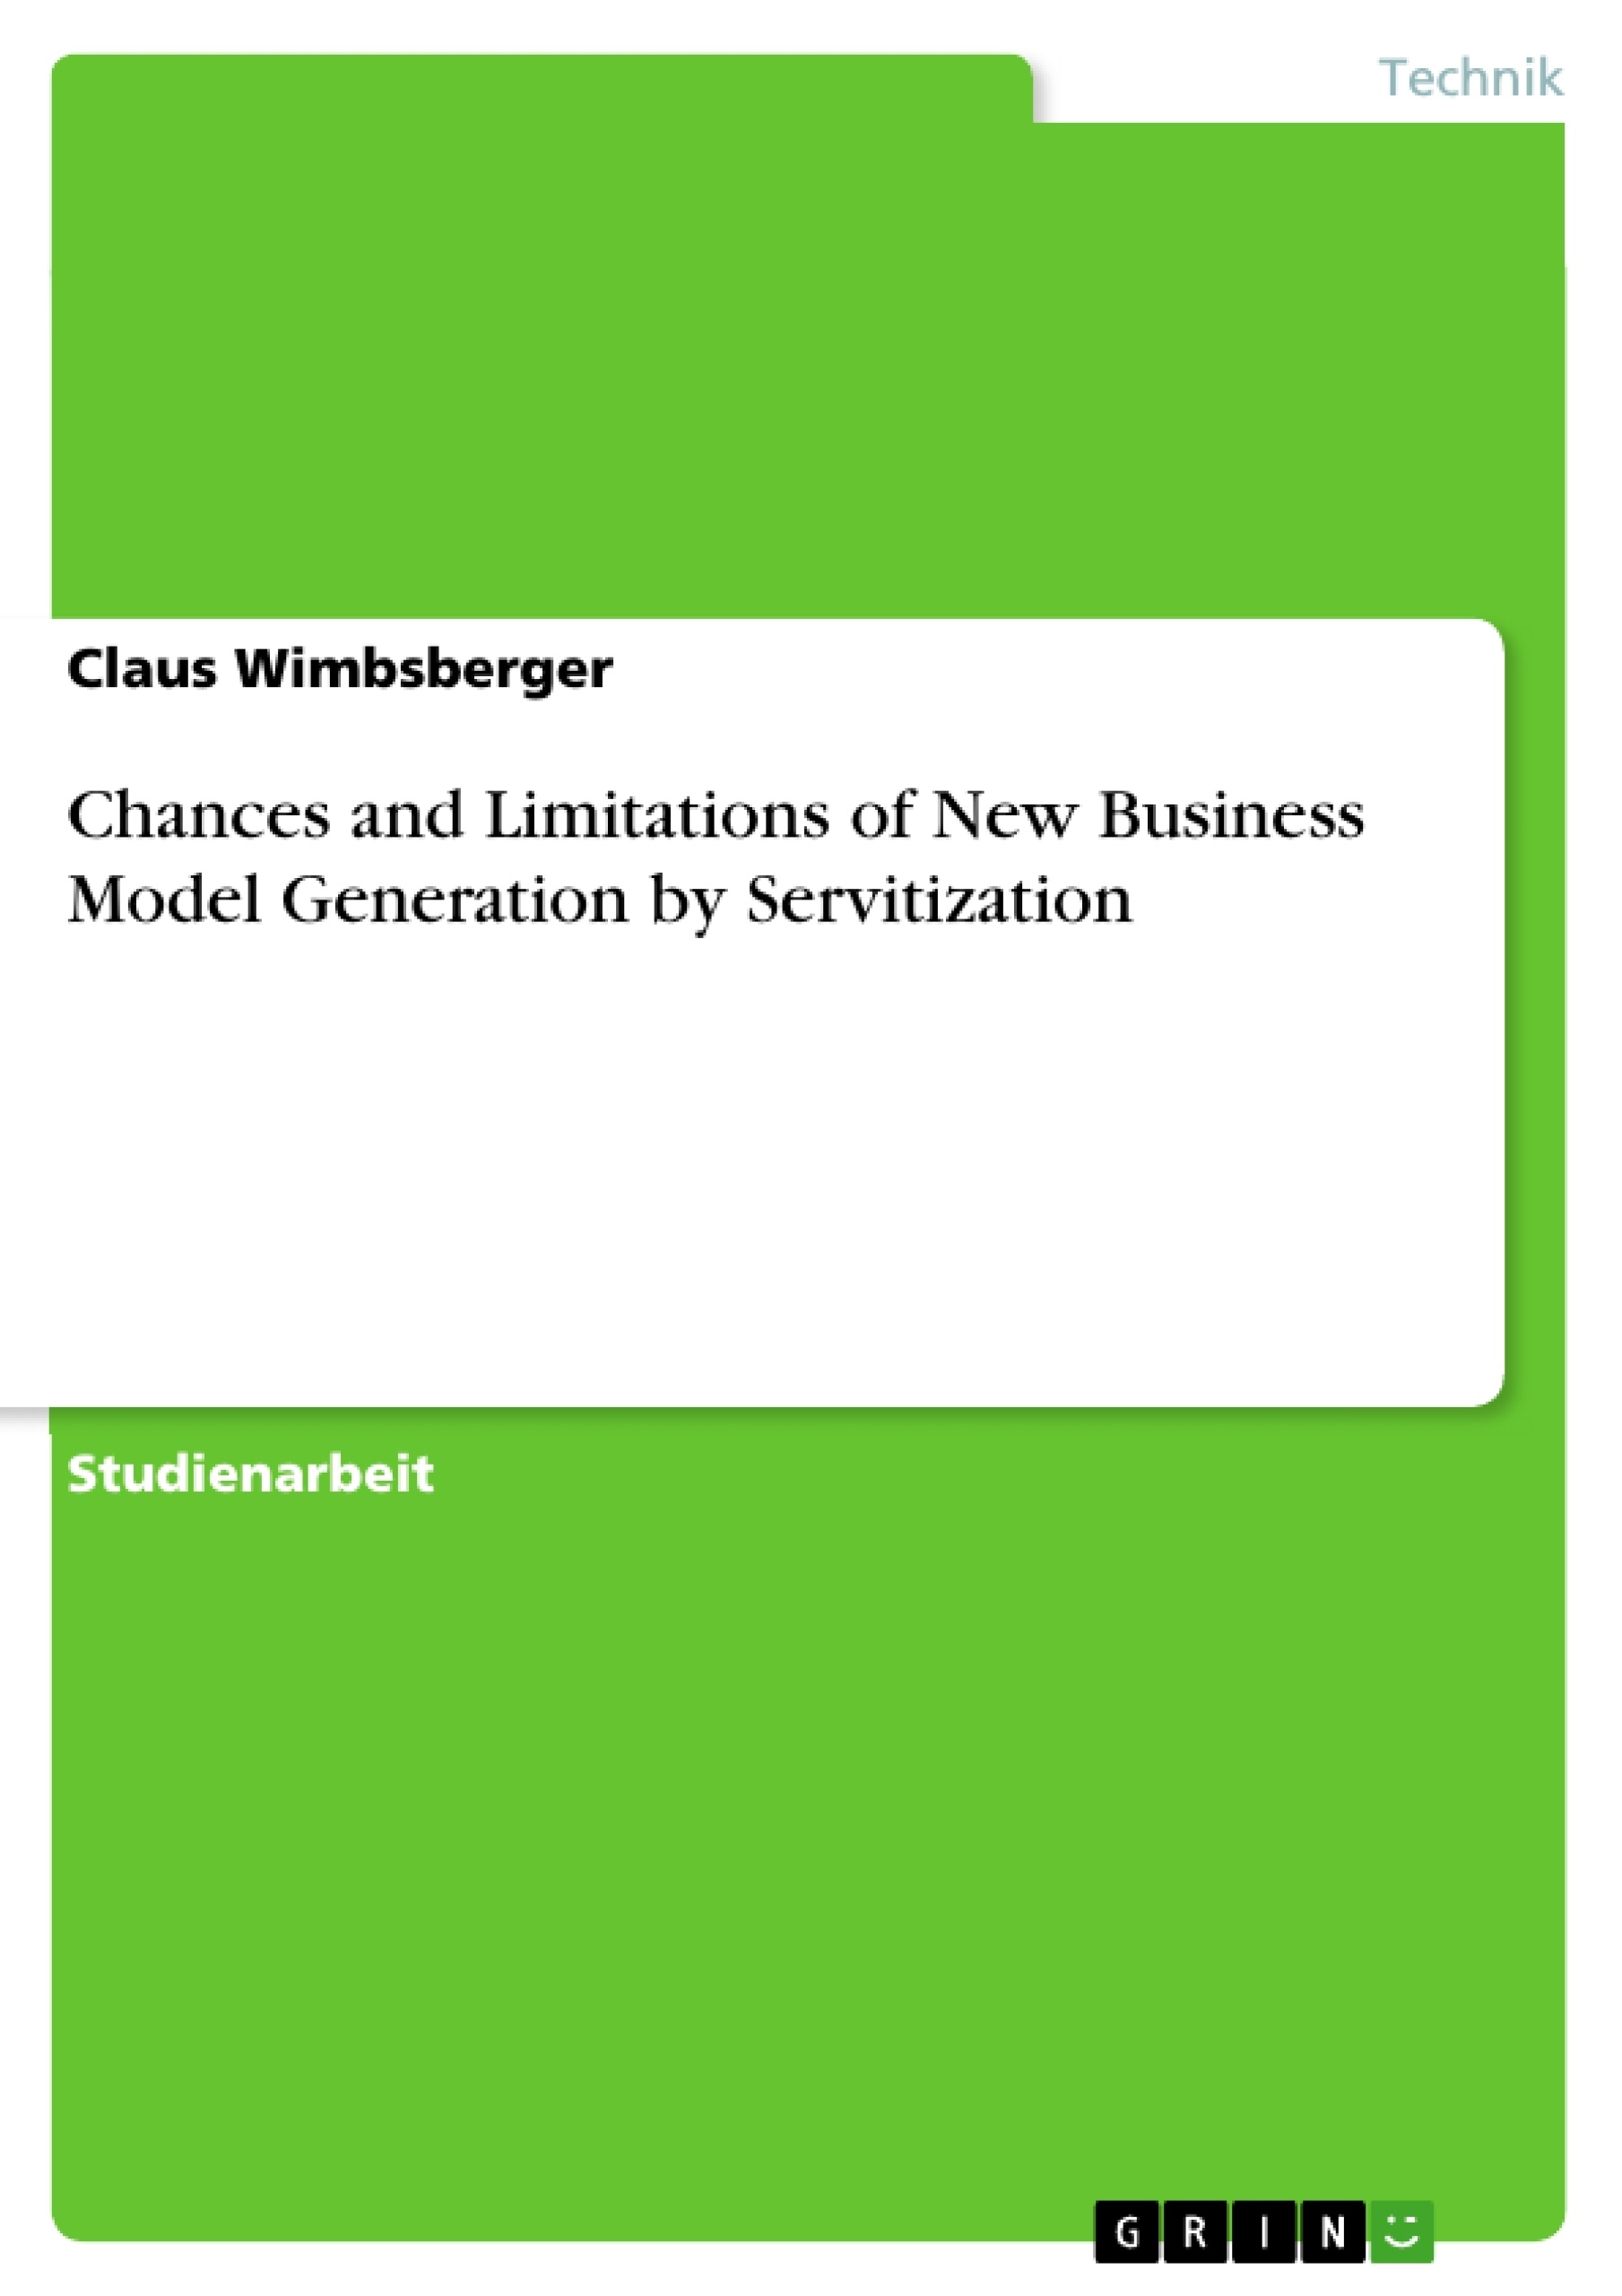 Titel: Chances and Limitations of New Business Model Generation by Servitization